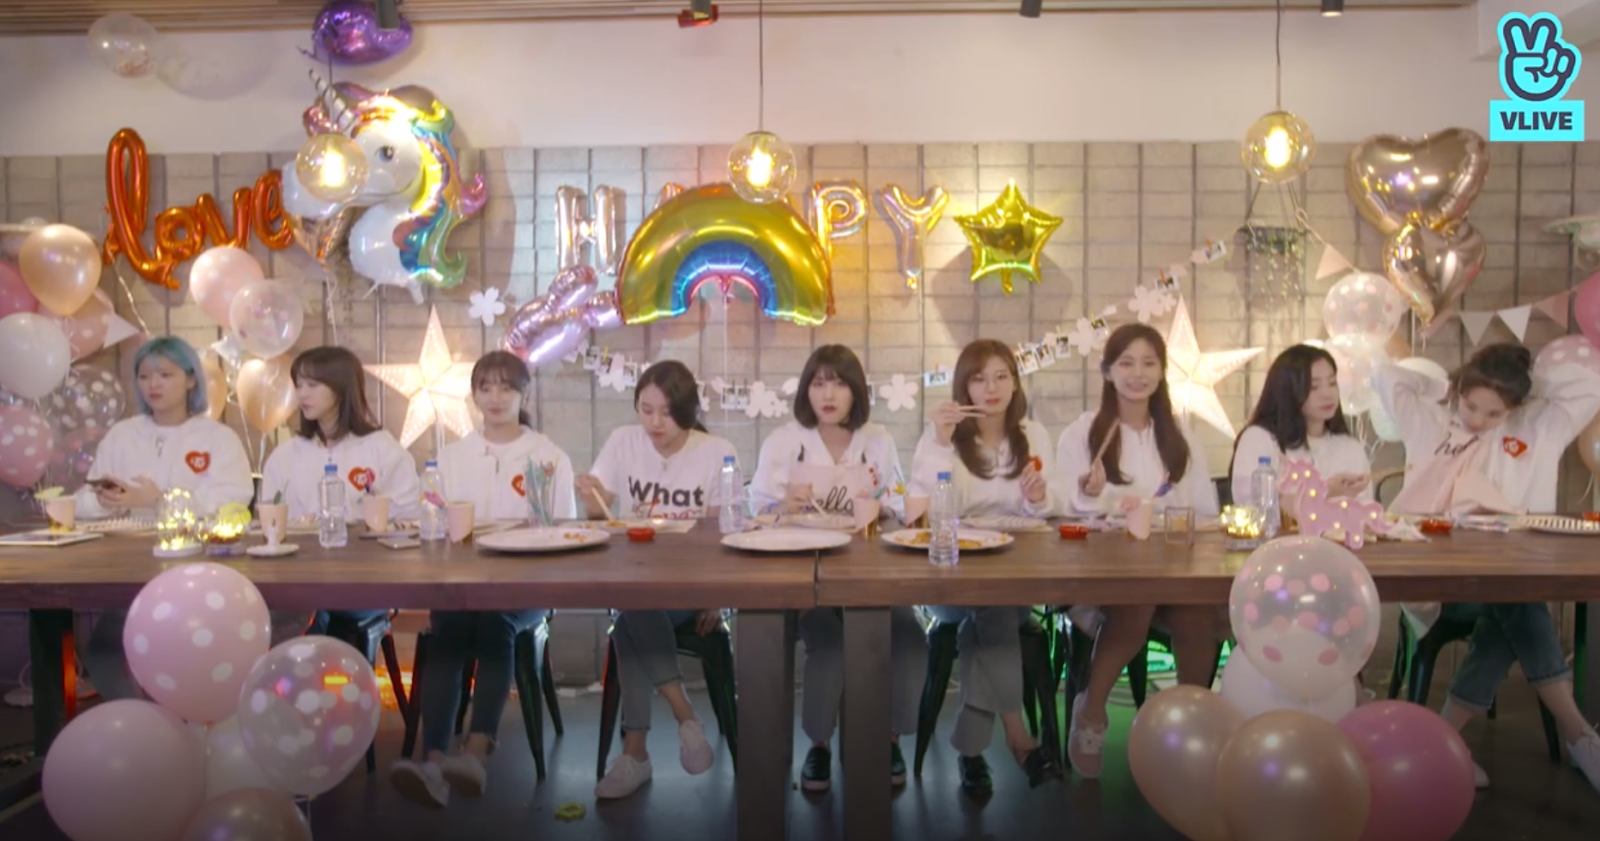 The Reason Why TWICE Doesn't Want to V Live Streaming at the Dorm